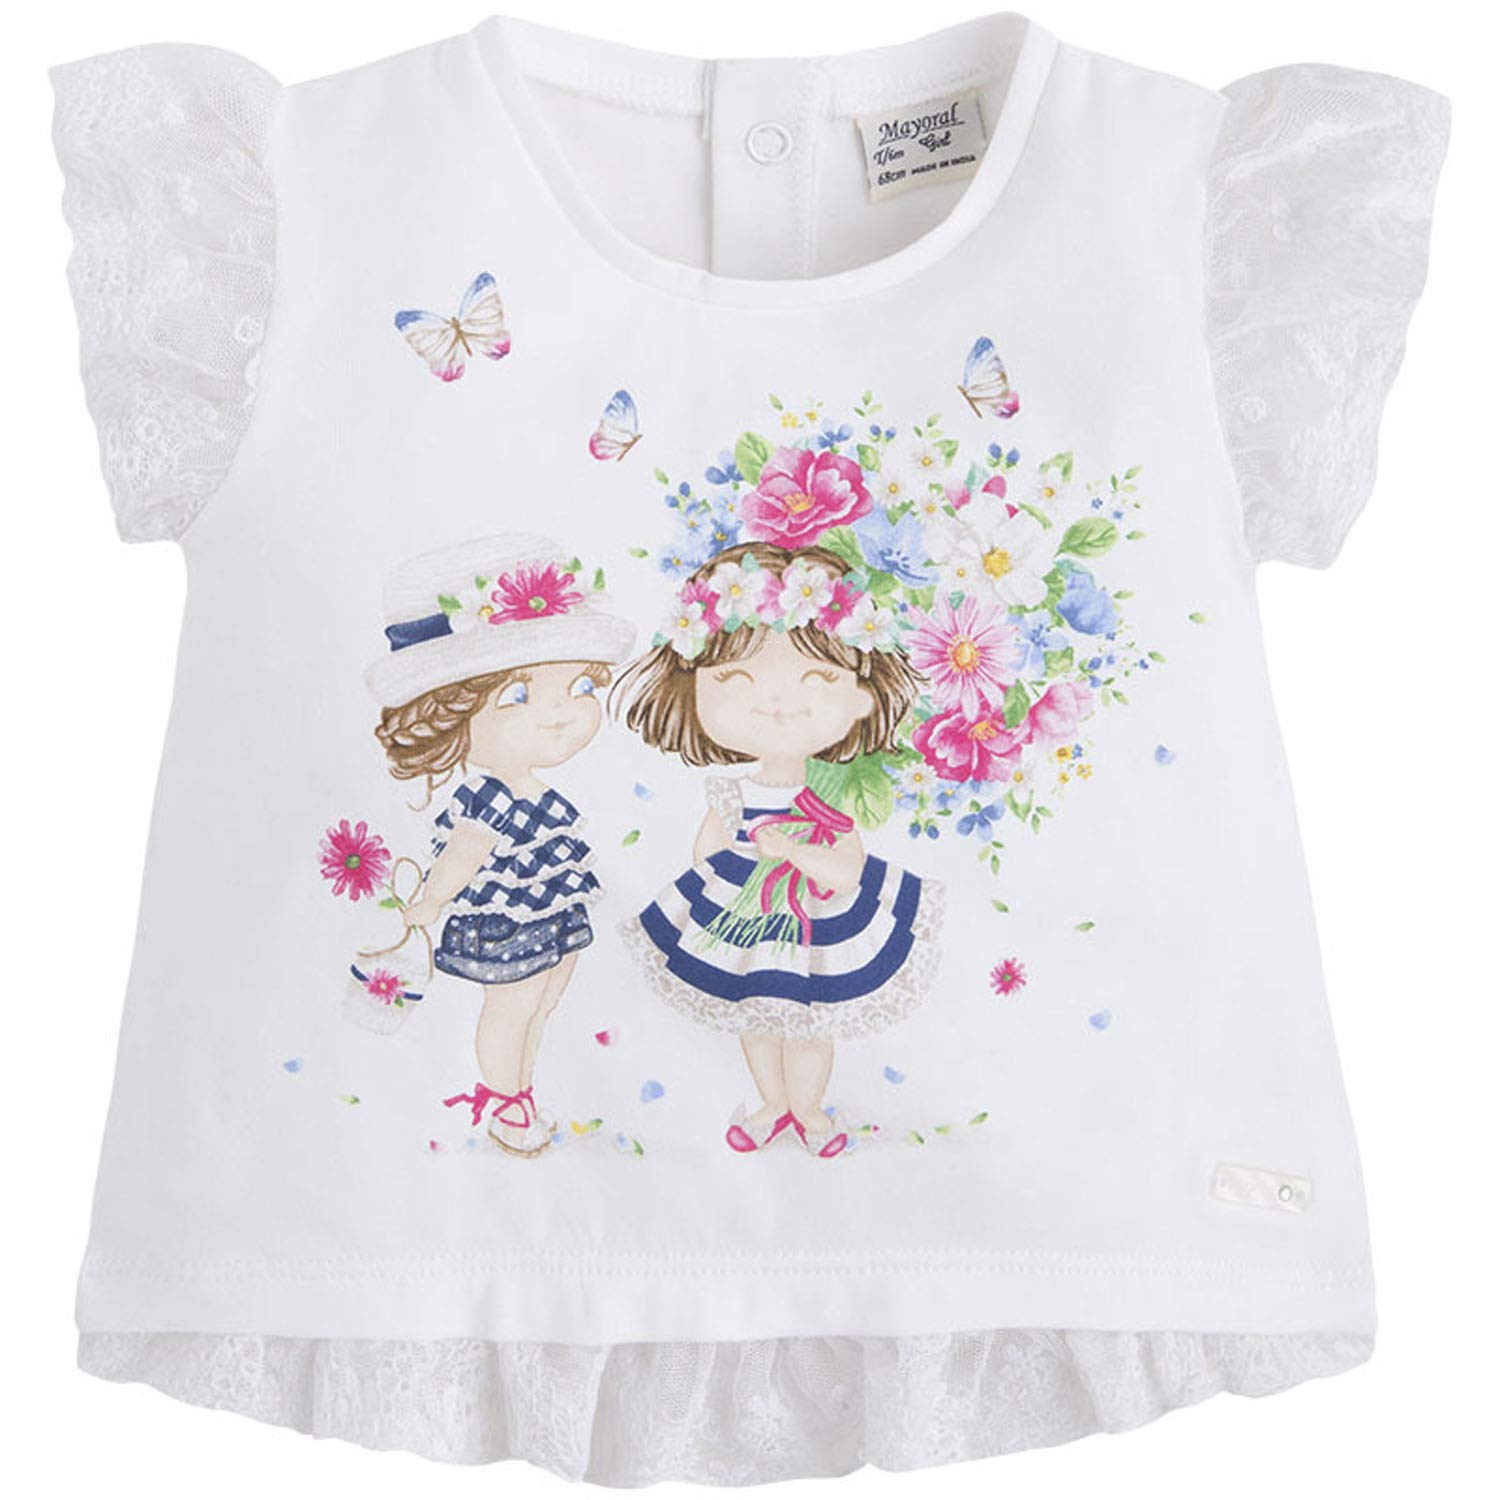 Baby Girls 3M-24M Lace Trim Novelty Print Short Sleeve T-Shirt